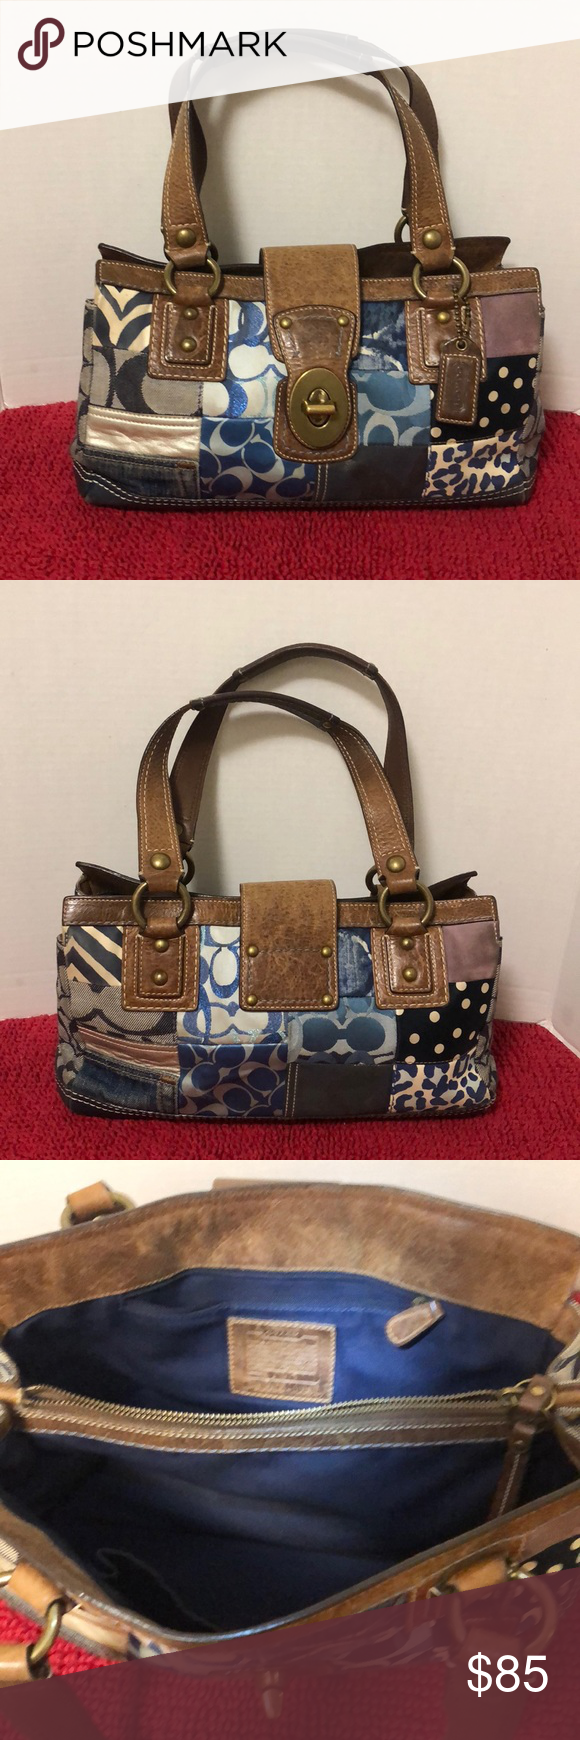 47037eae9437 ⤵️TODAY 16%⤵ Coach Patchwork Signature Handbag Coach Signature Patchwork  Handbag. With